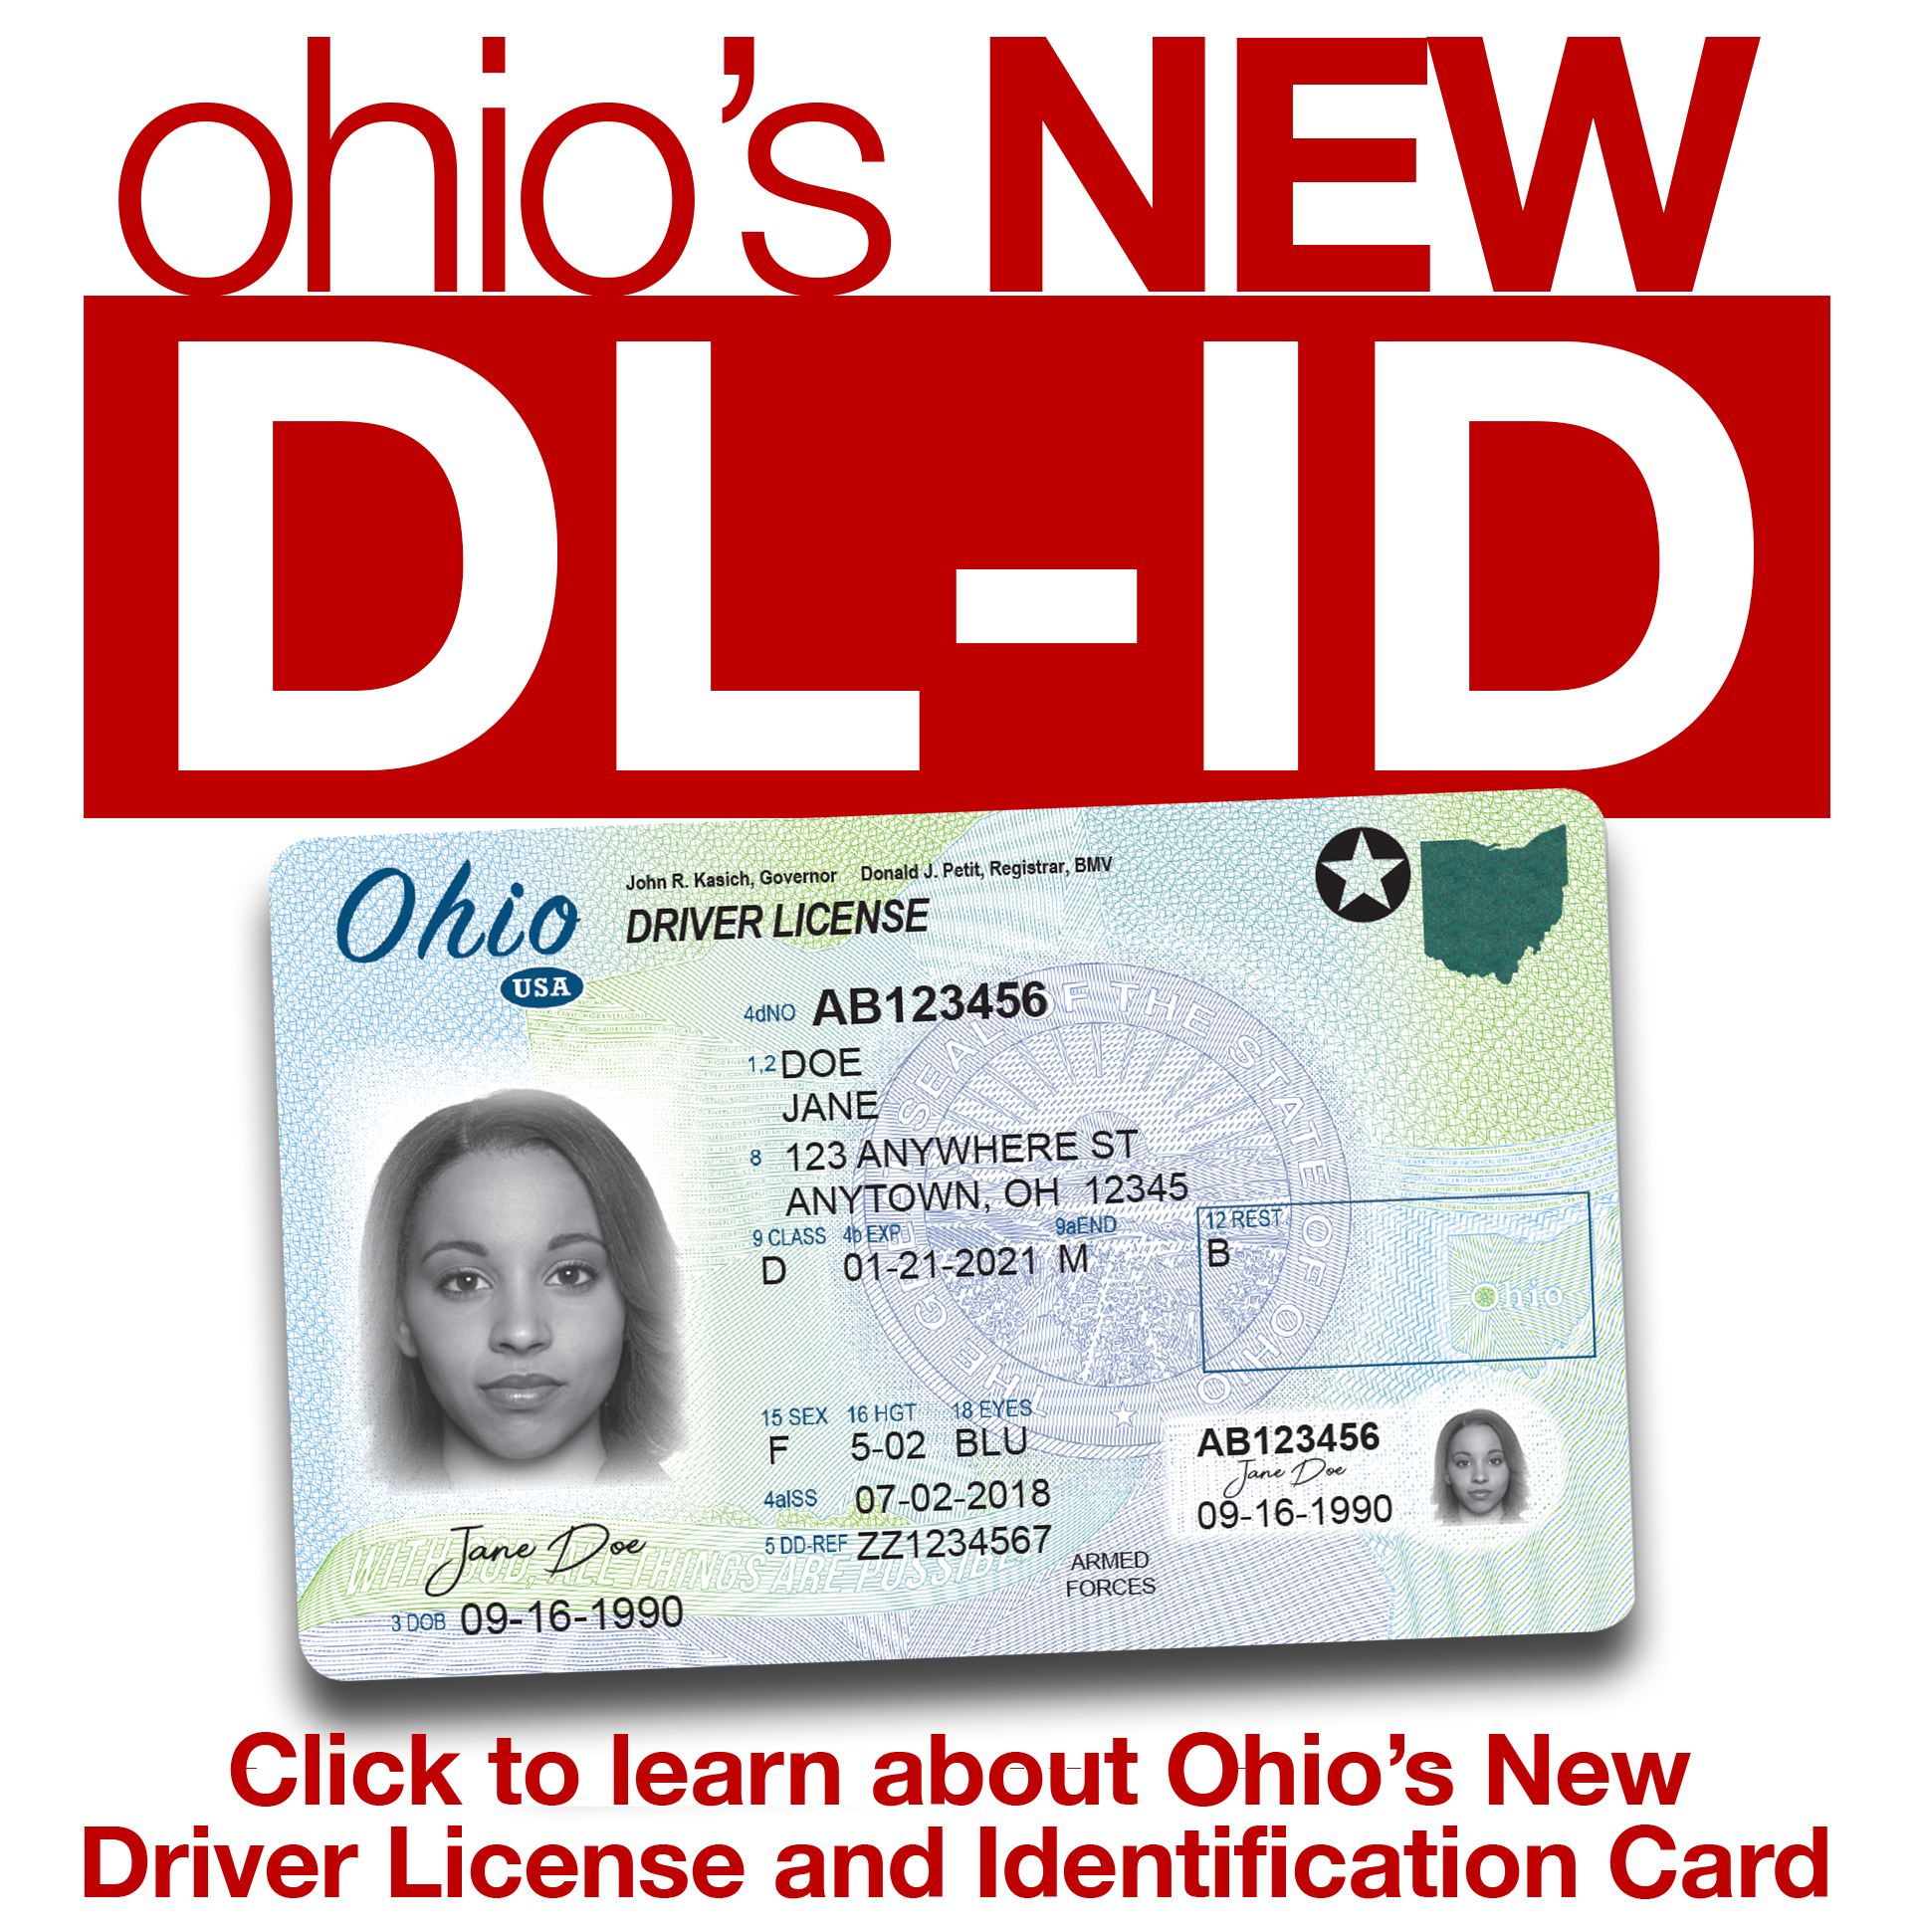 New Driver license ID card home page